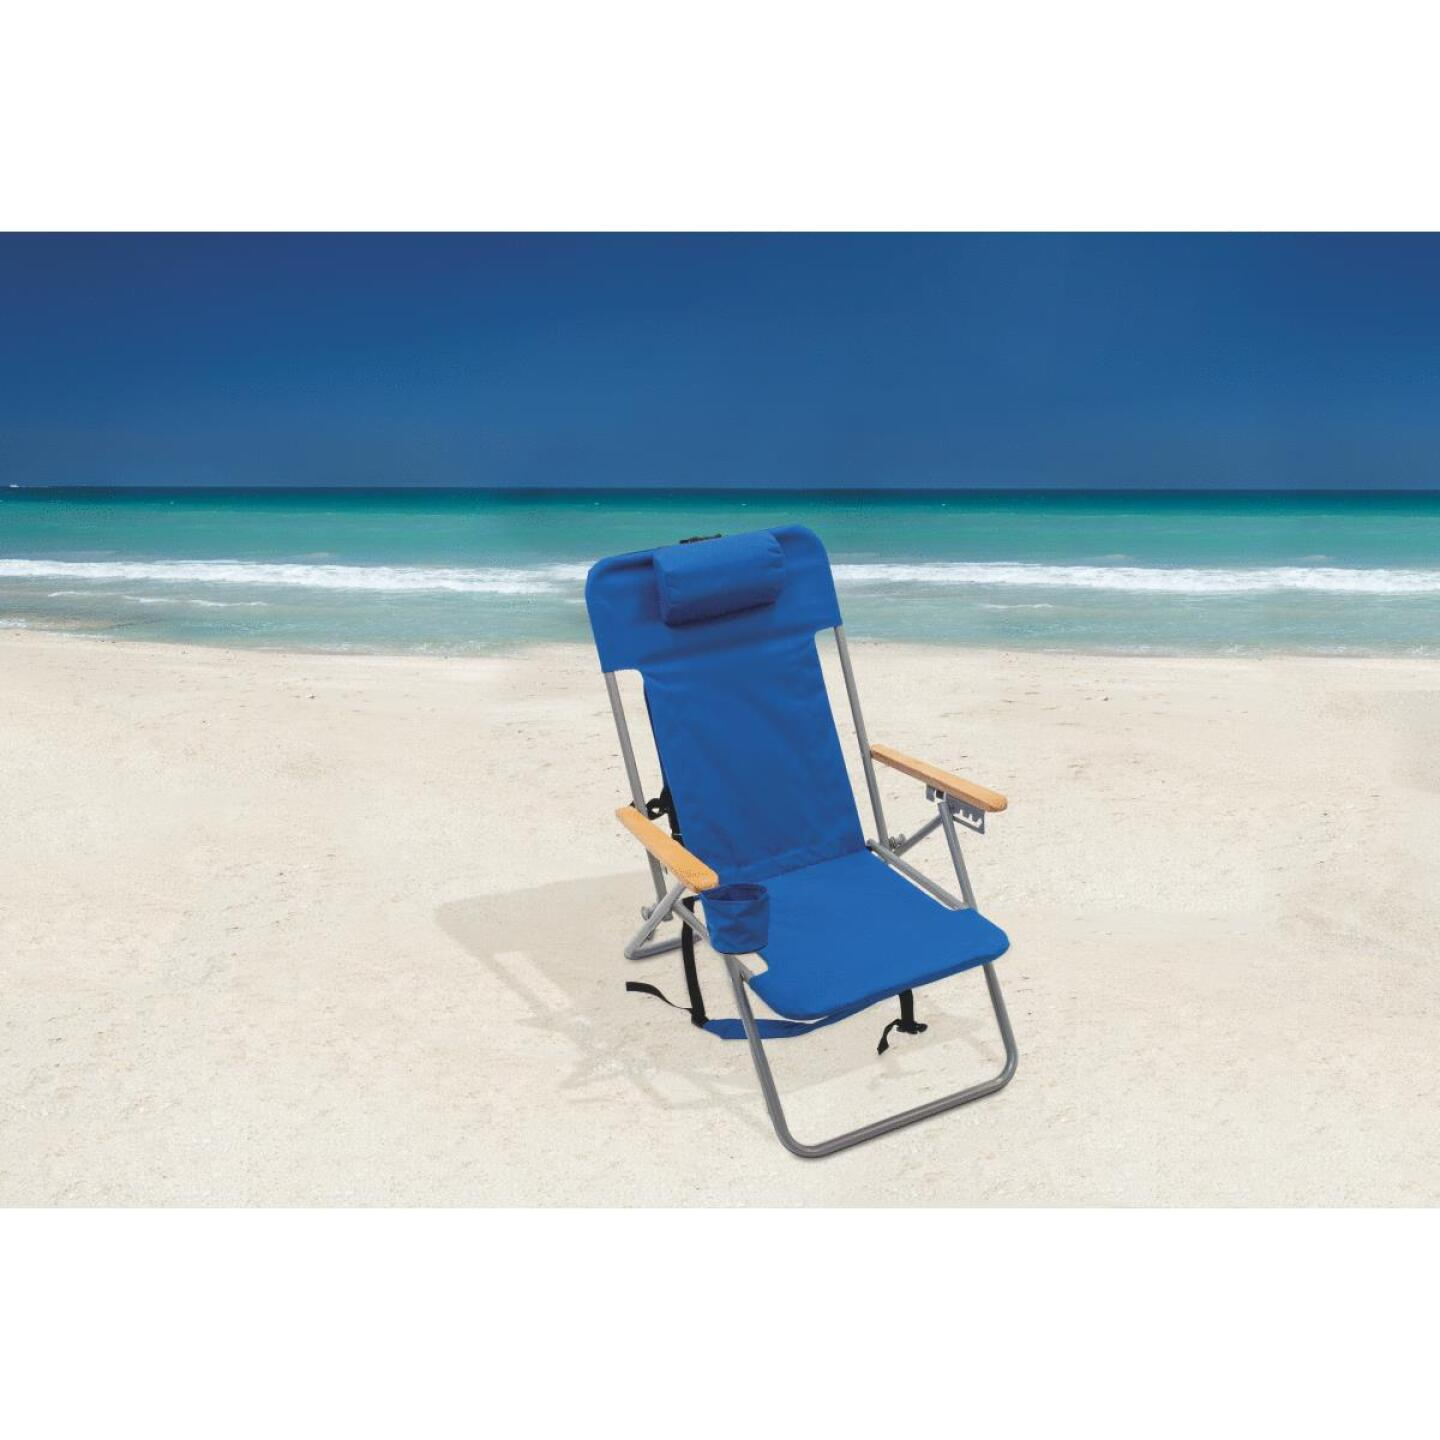 Rio Brands Blue Canvas Backpack Folding Chair Image 2